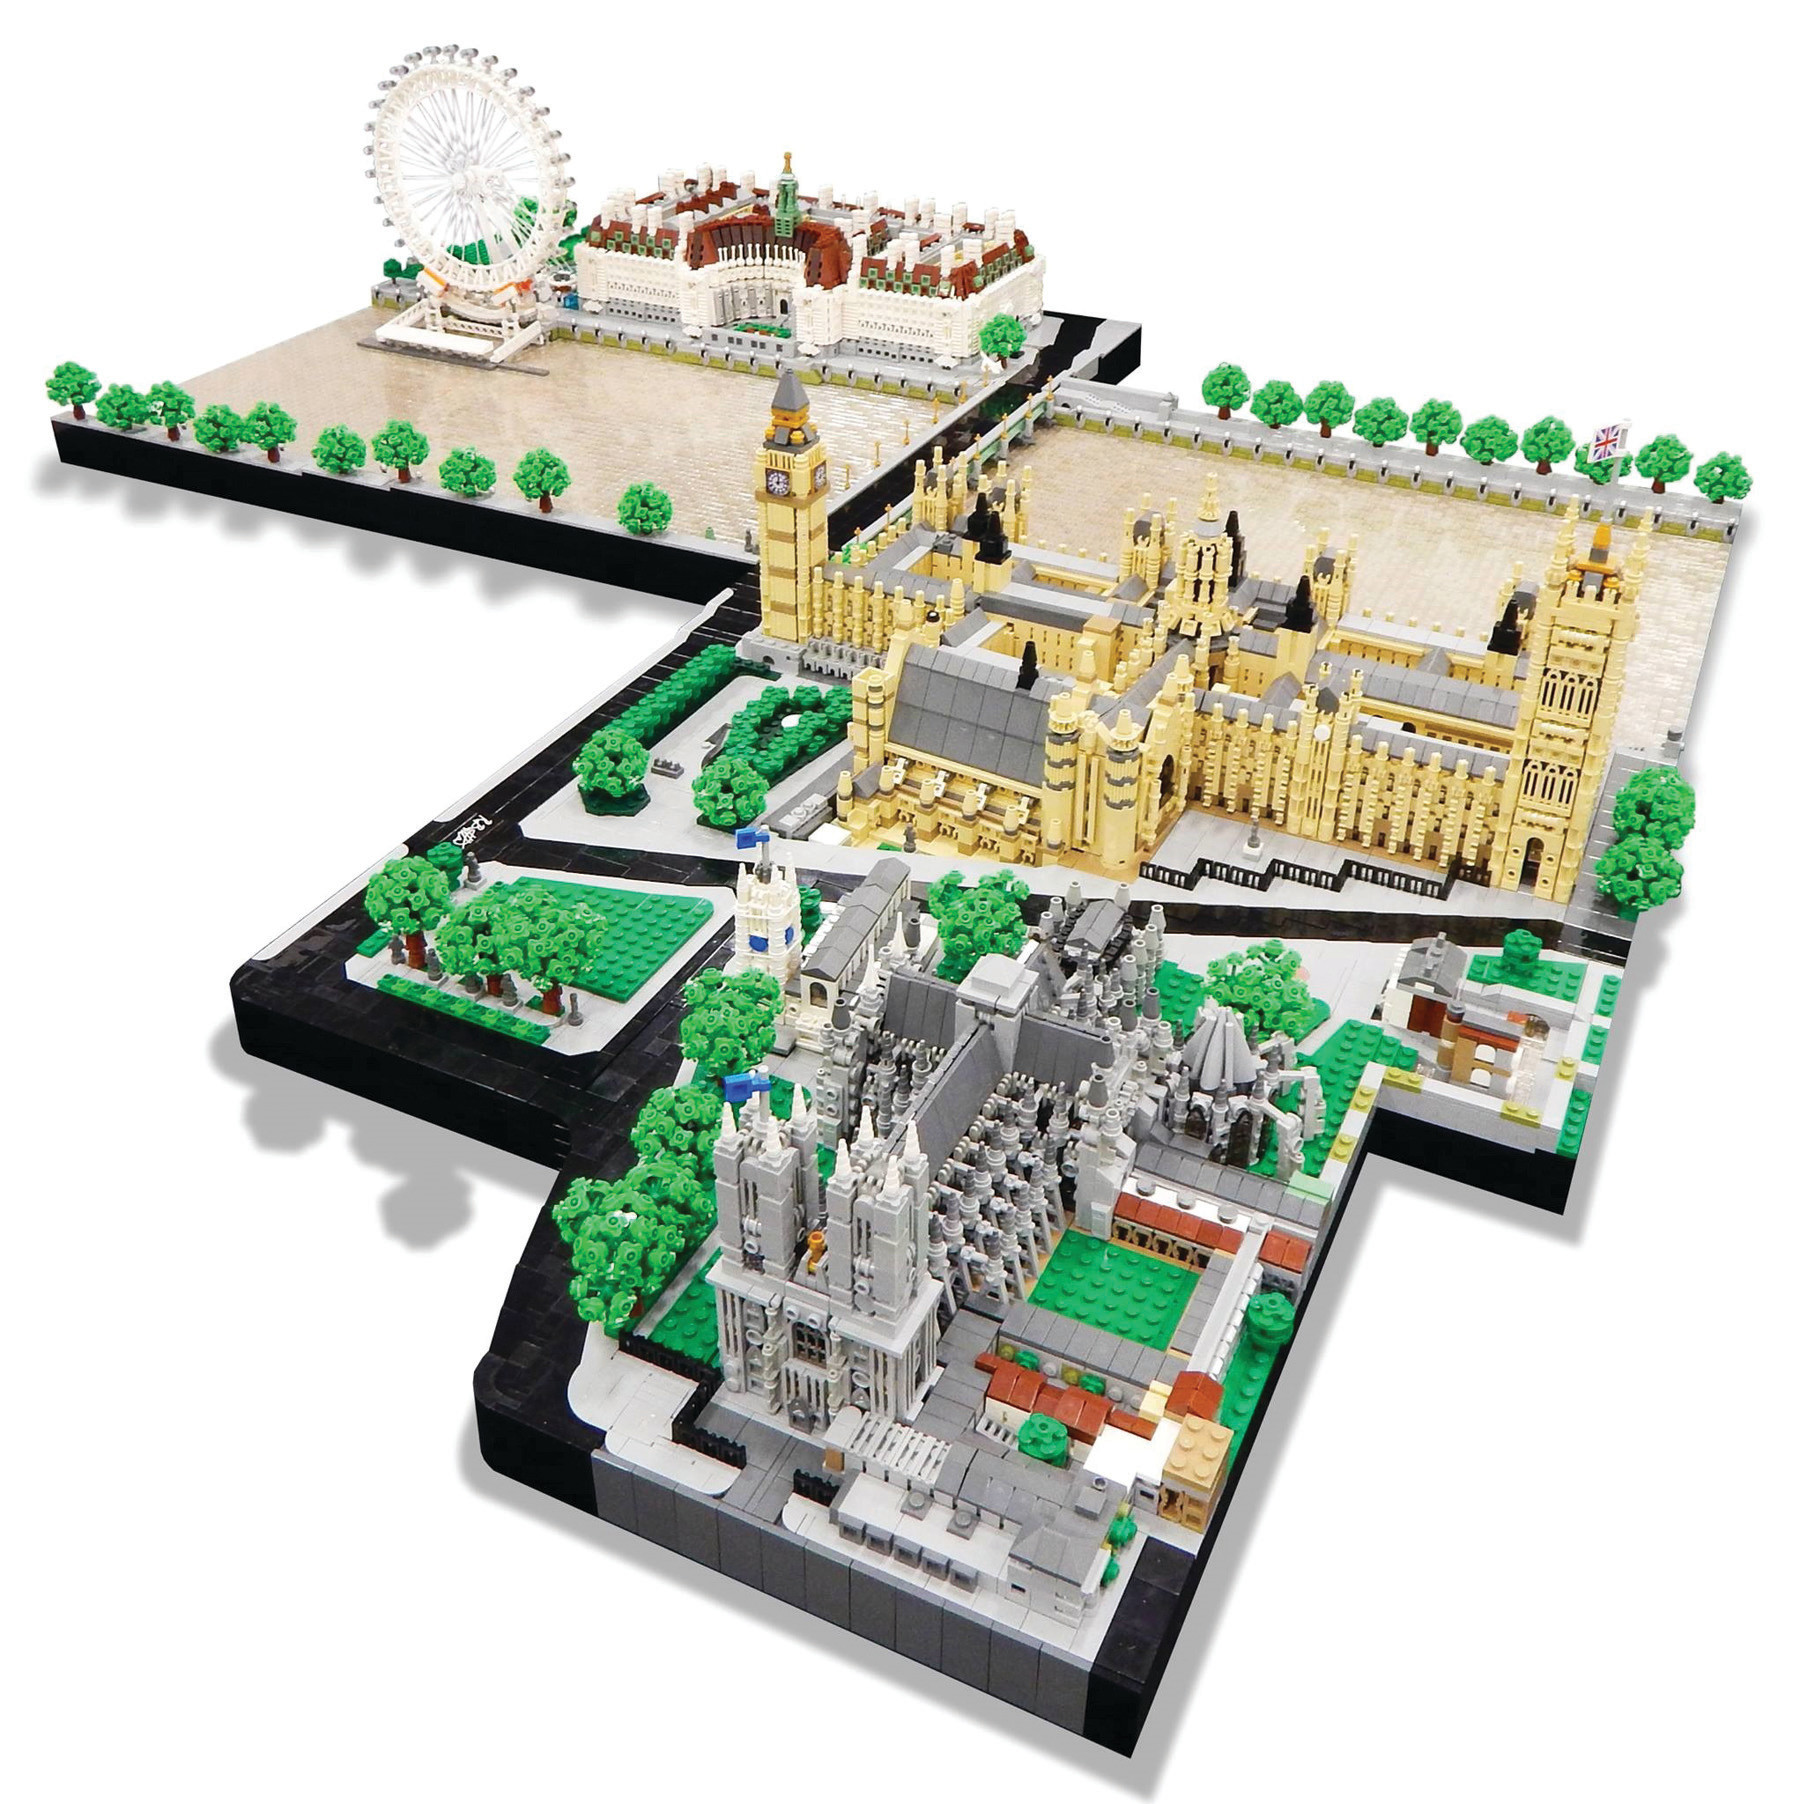 Rocco Buttliere built this 1/650 scale of London with 50,000 LEGO bricks.